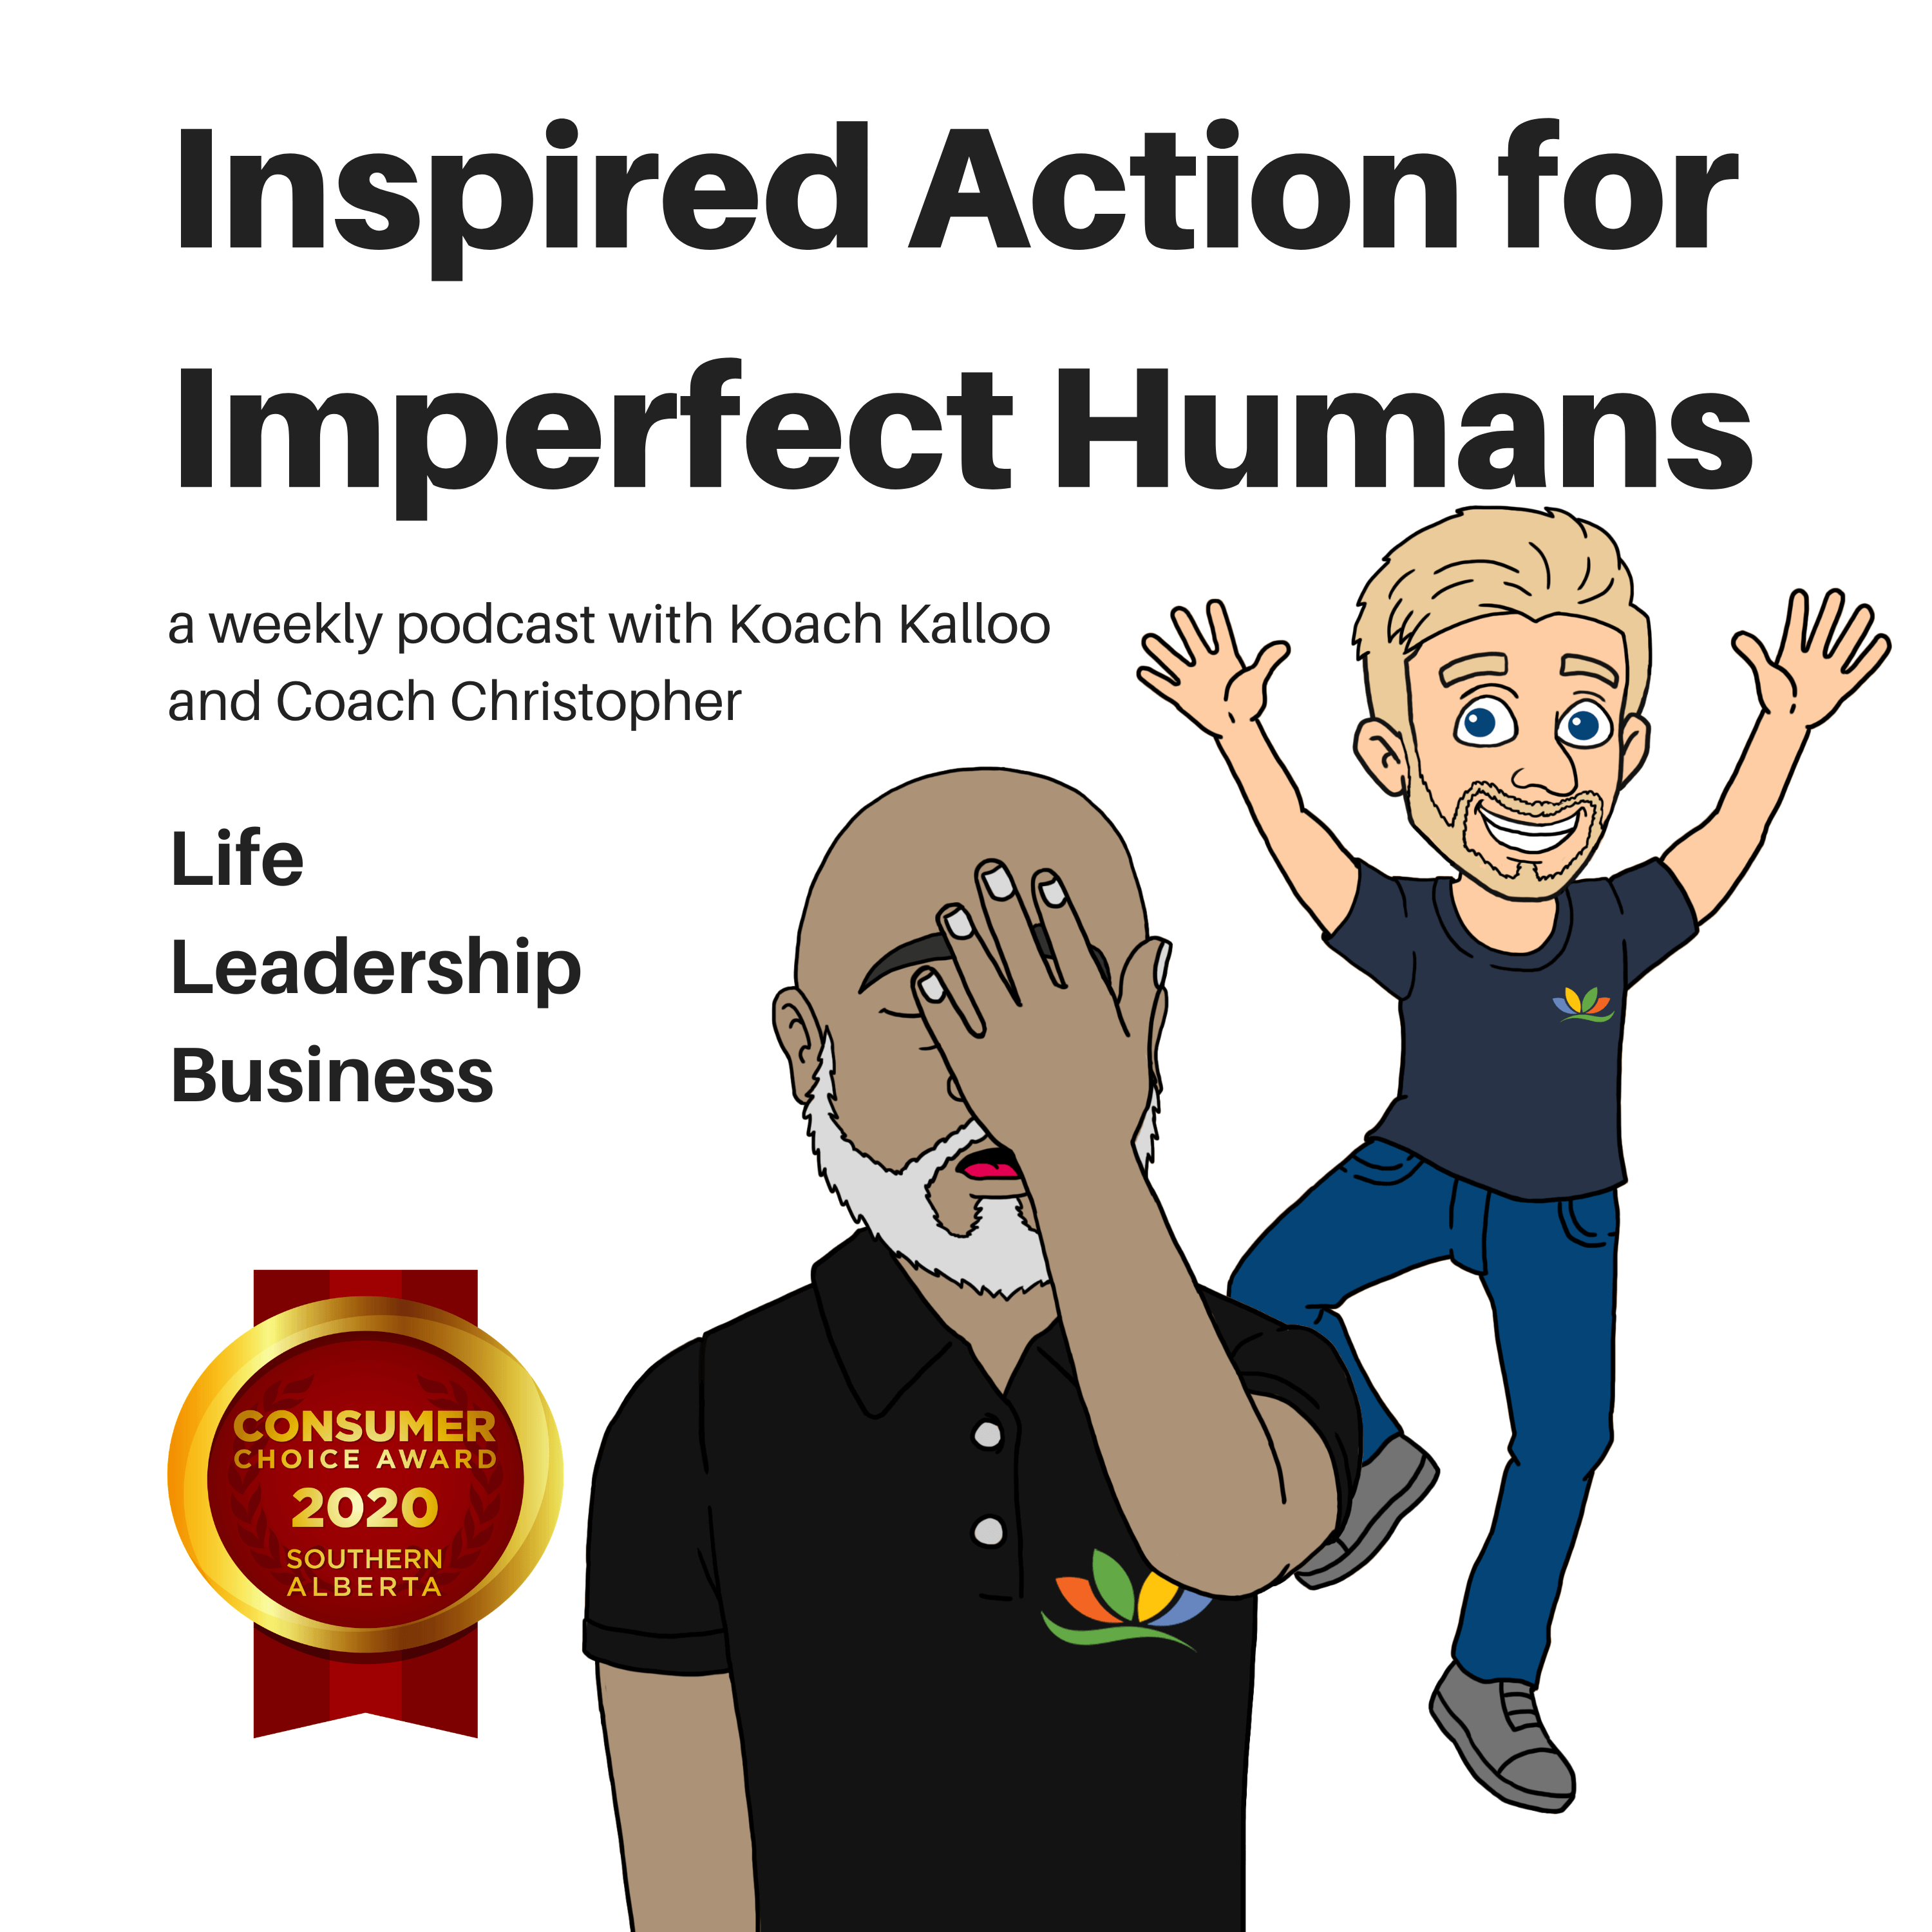 """Image for the """"Inspired Action for Imperfect Humans"""" Podcast"""